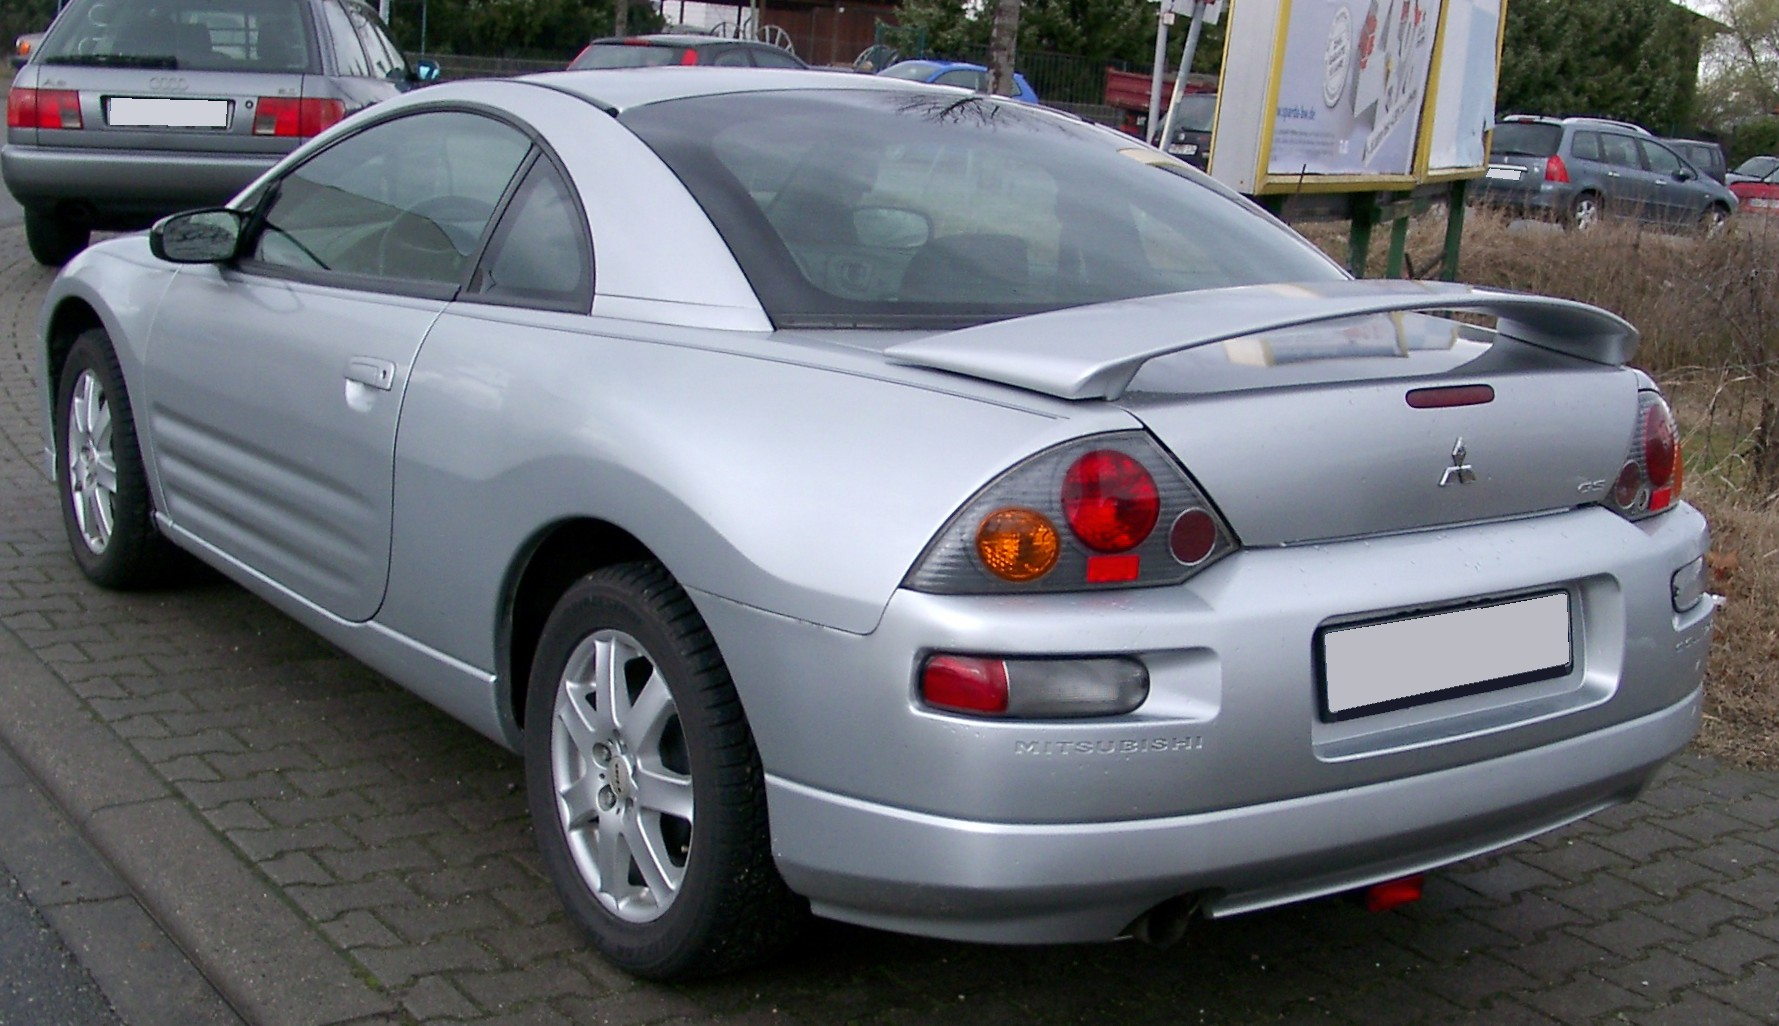 File:Mitsubishi Eclipse rear 20080303.jpg - Wikimedia Commons